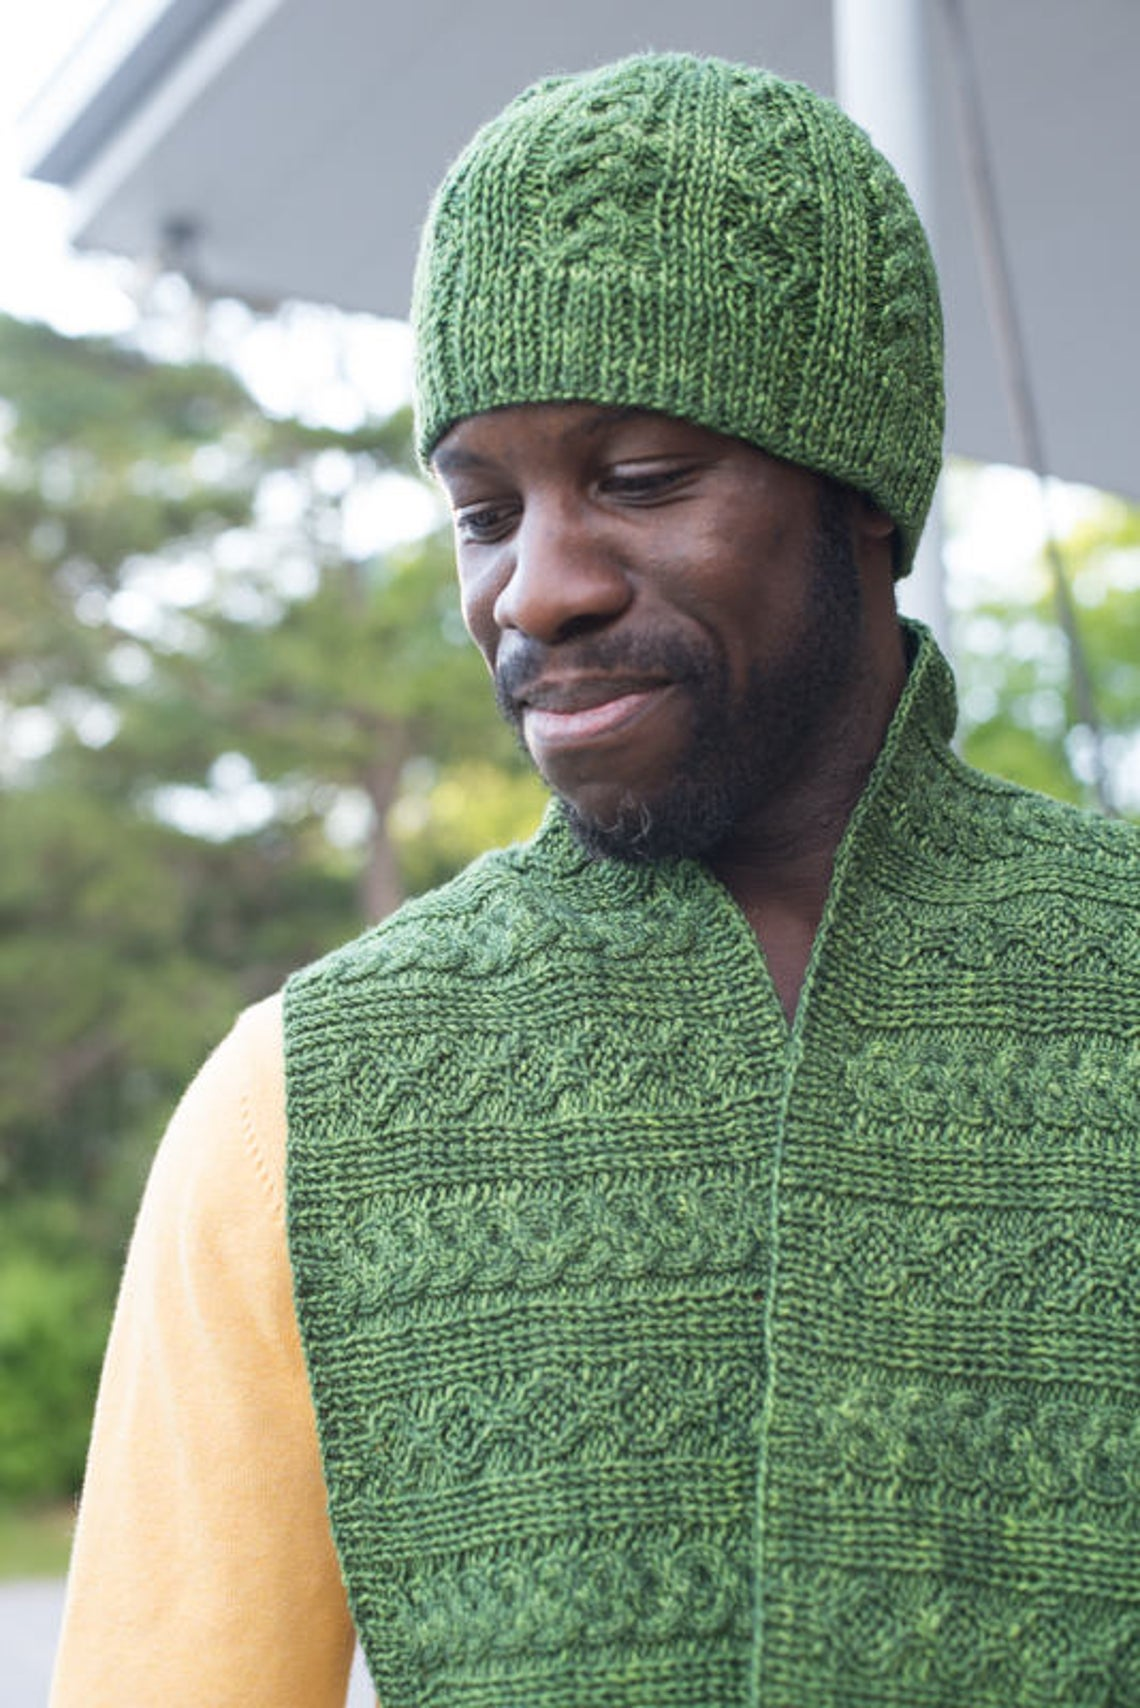 Three Smart & Stylish Hat Patterns For Knitters, Designed By Fatimah of Disturbing The Fleece